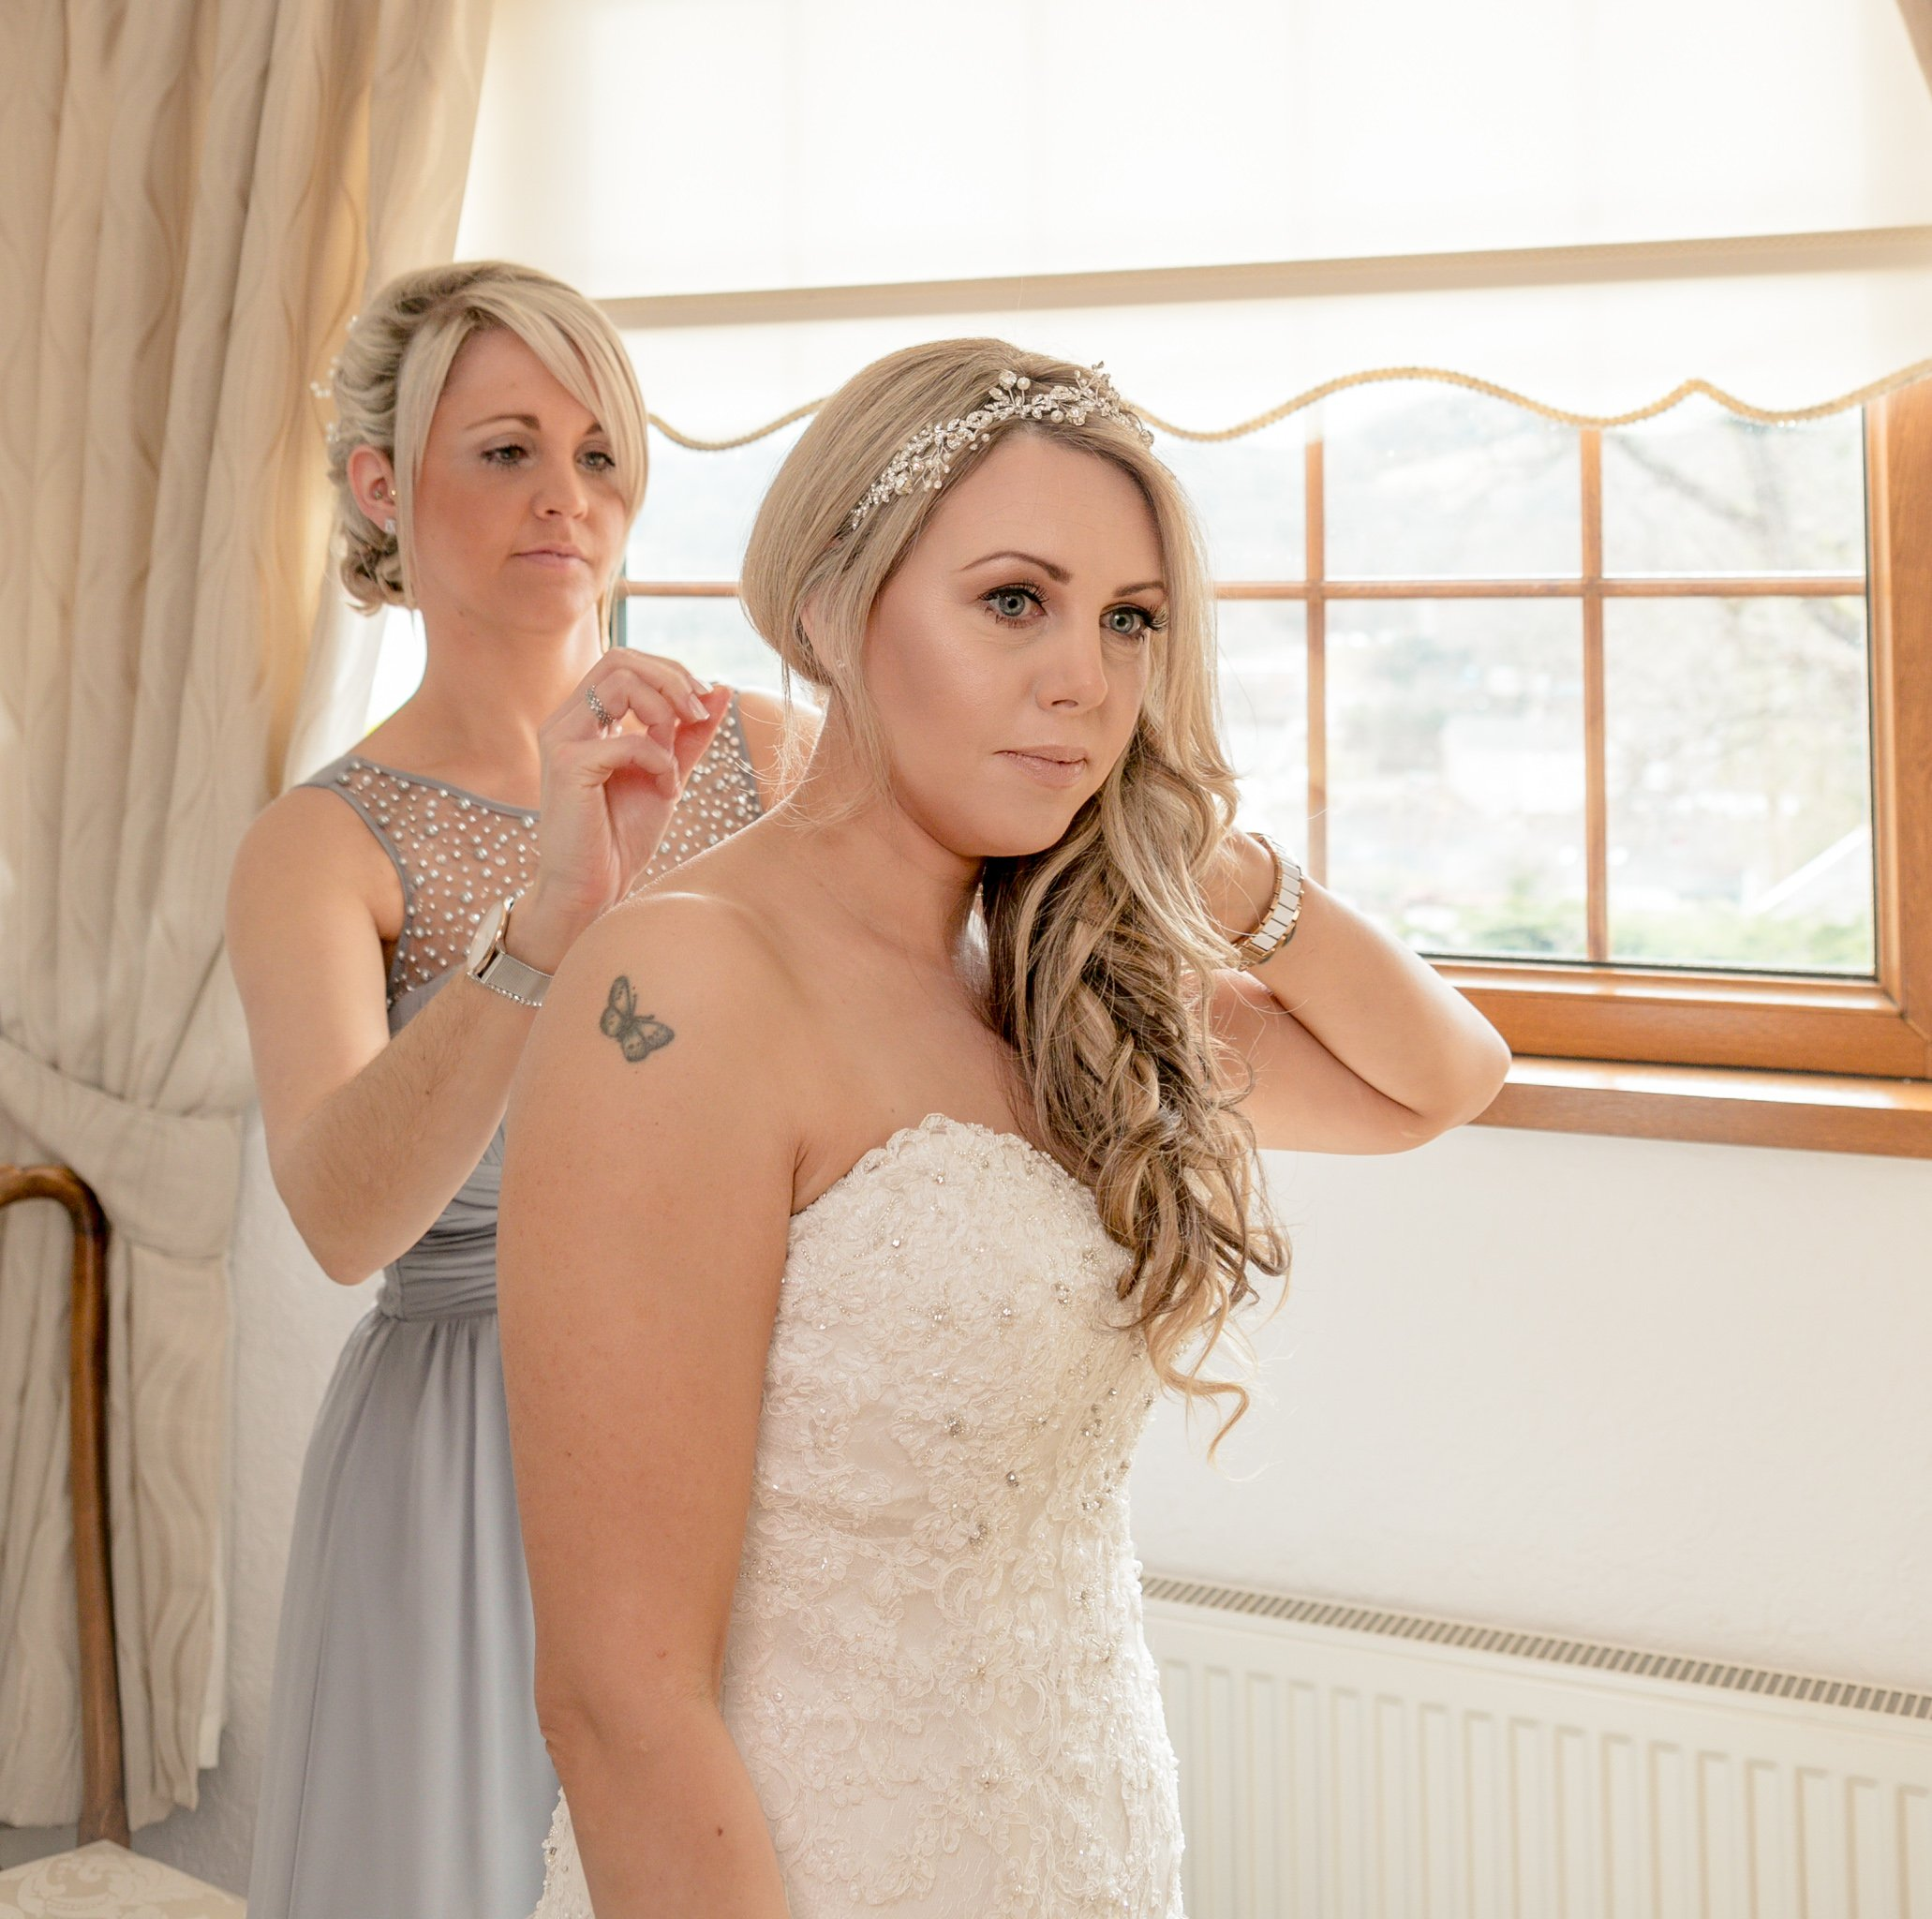 Bridesmaid's assistance, Wedding of Sarah & Scott, The Parkway Hotel Cwmbran, Tania Miller Photography, Cwmbran wedding photographer